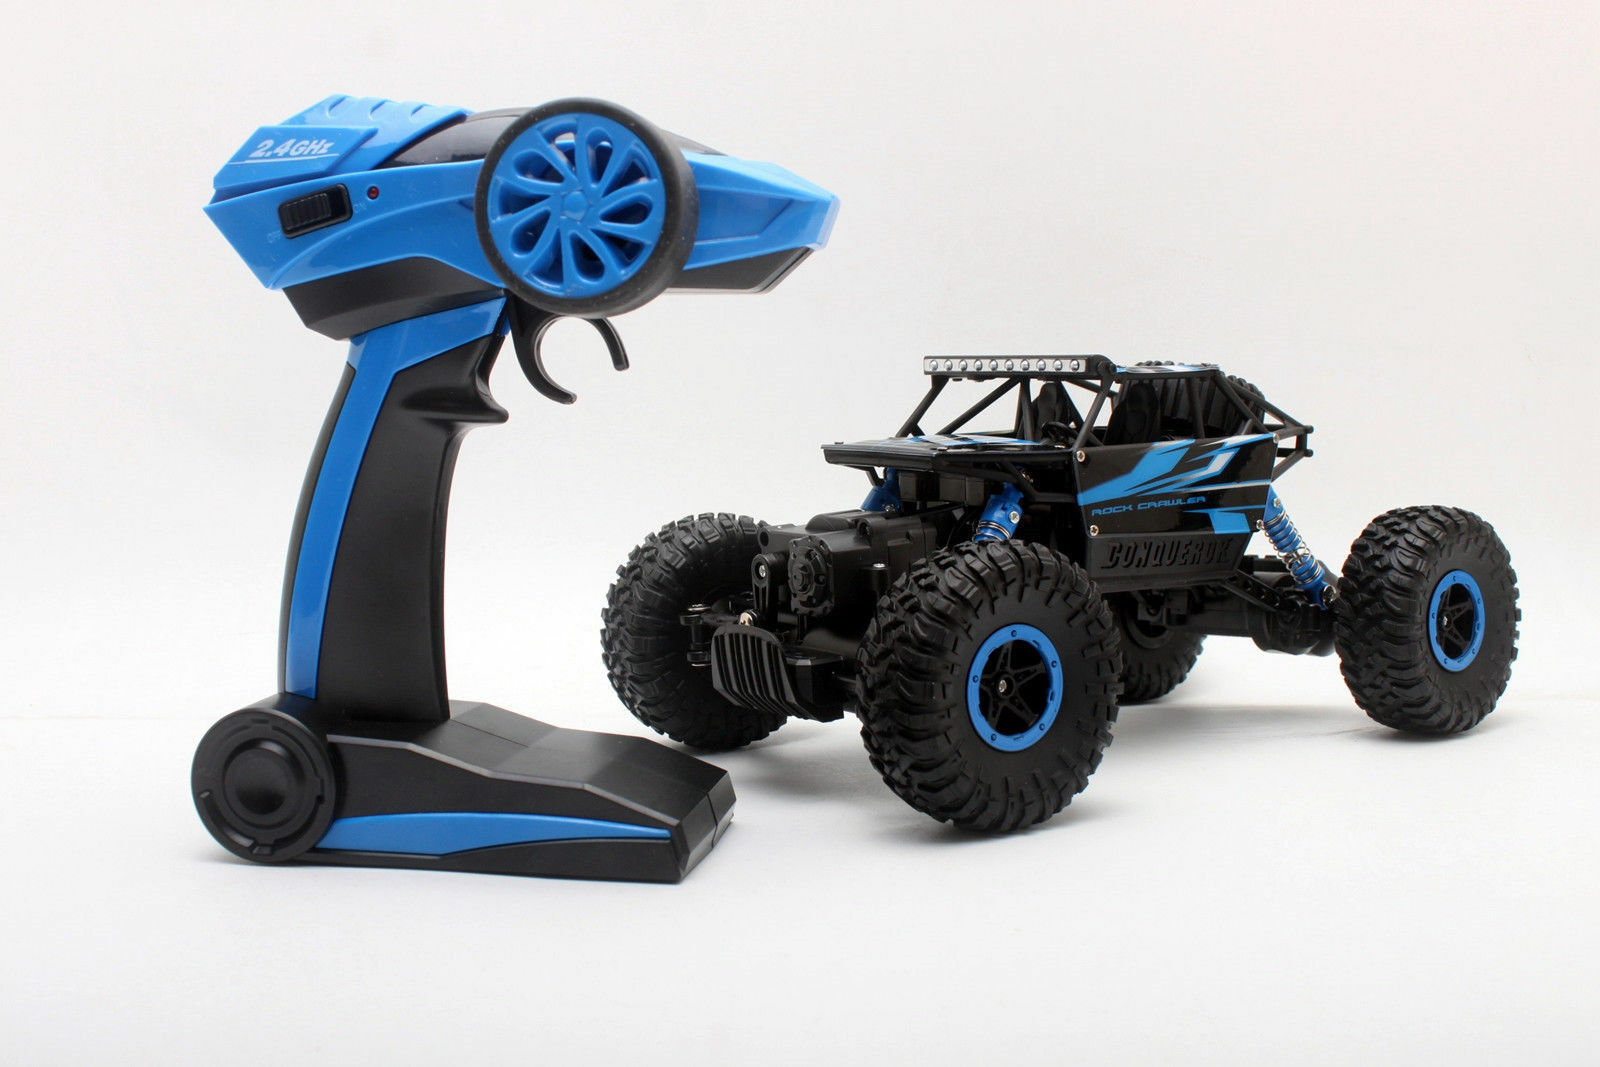 Купить Cheerwing - HB-P1801 2.4GHz 4WD 1/18 Scale 4x4 Rock Crawler Off-road Vehicle RC Car Truck